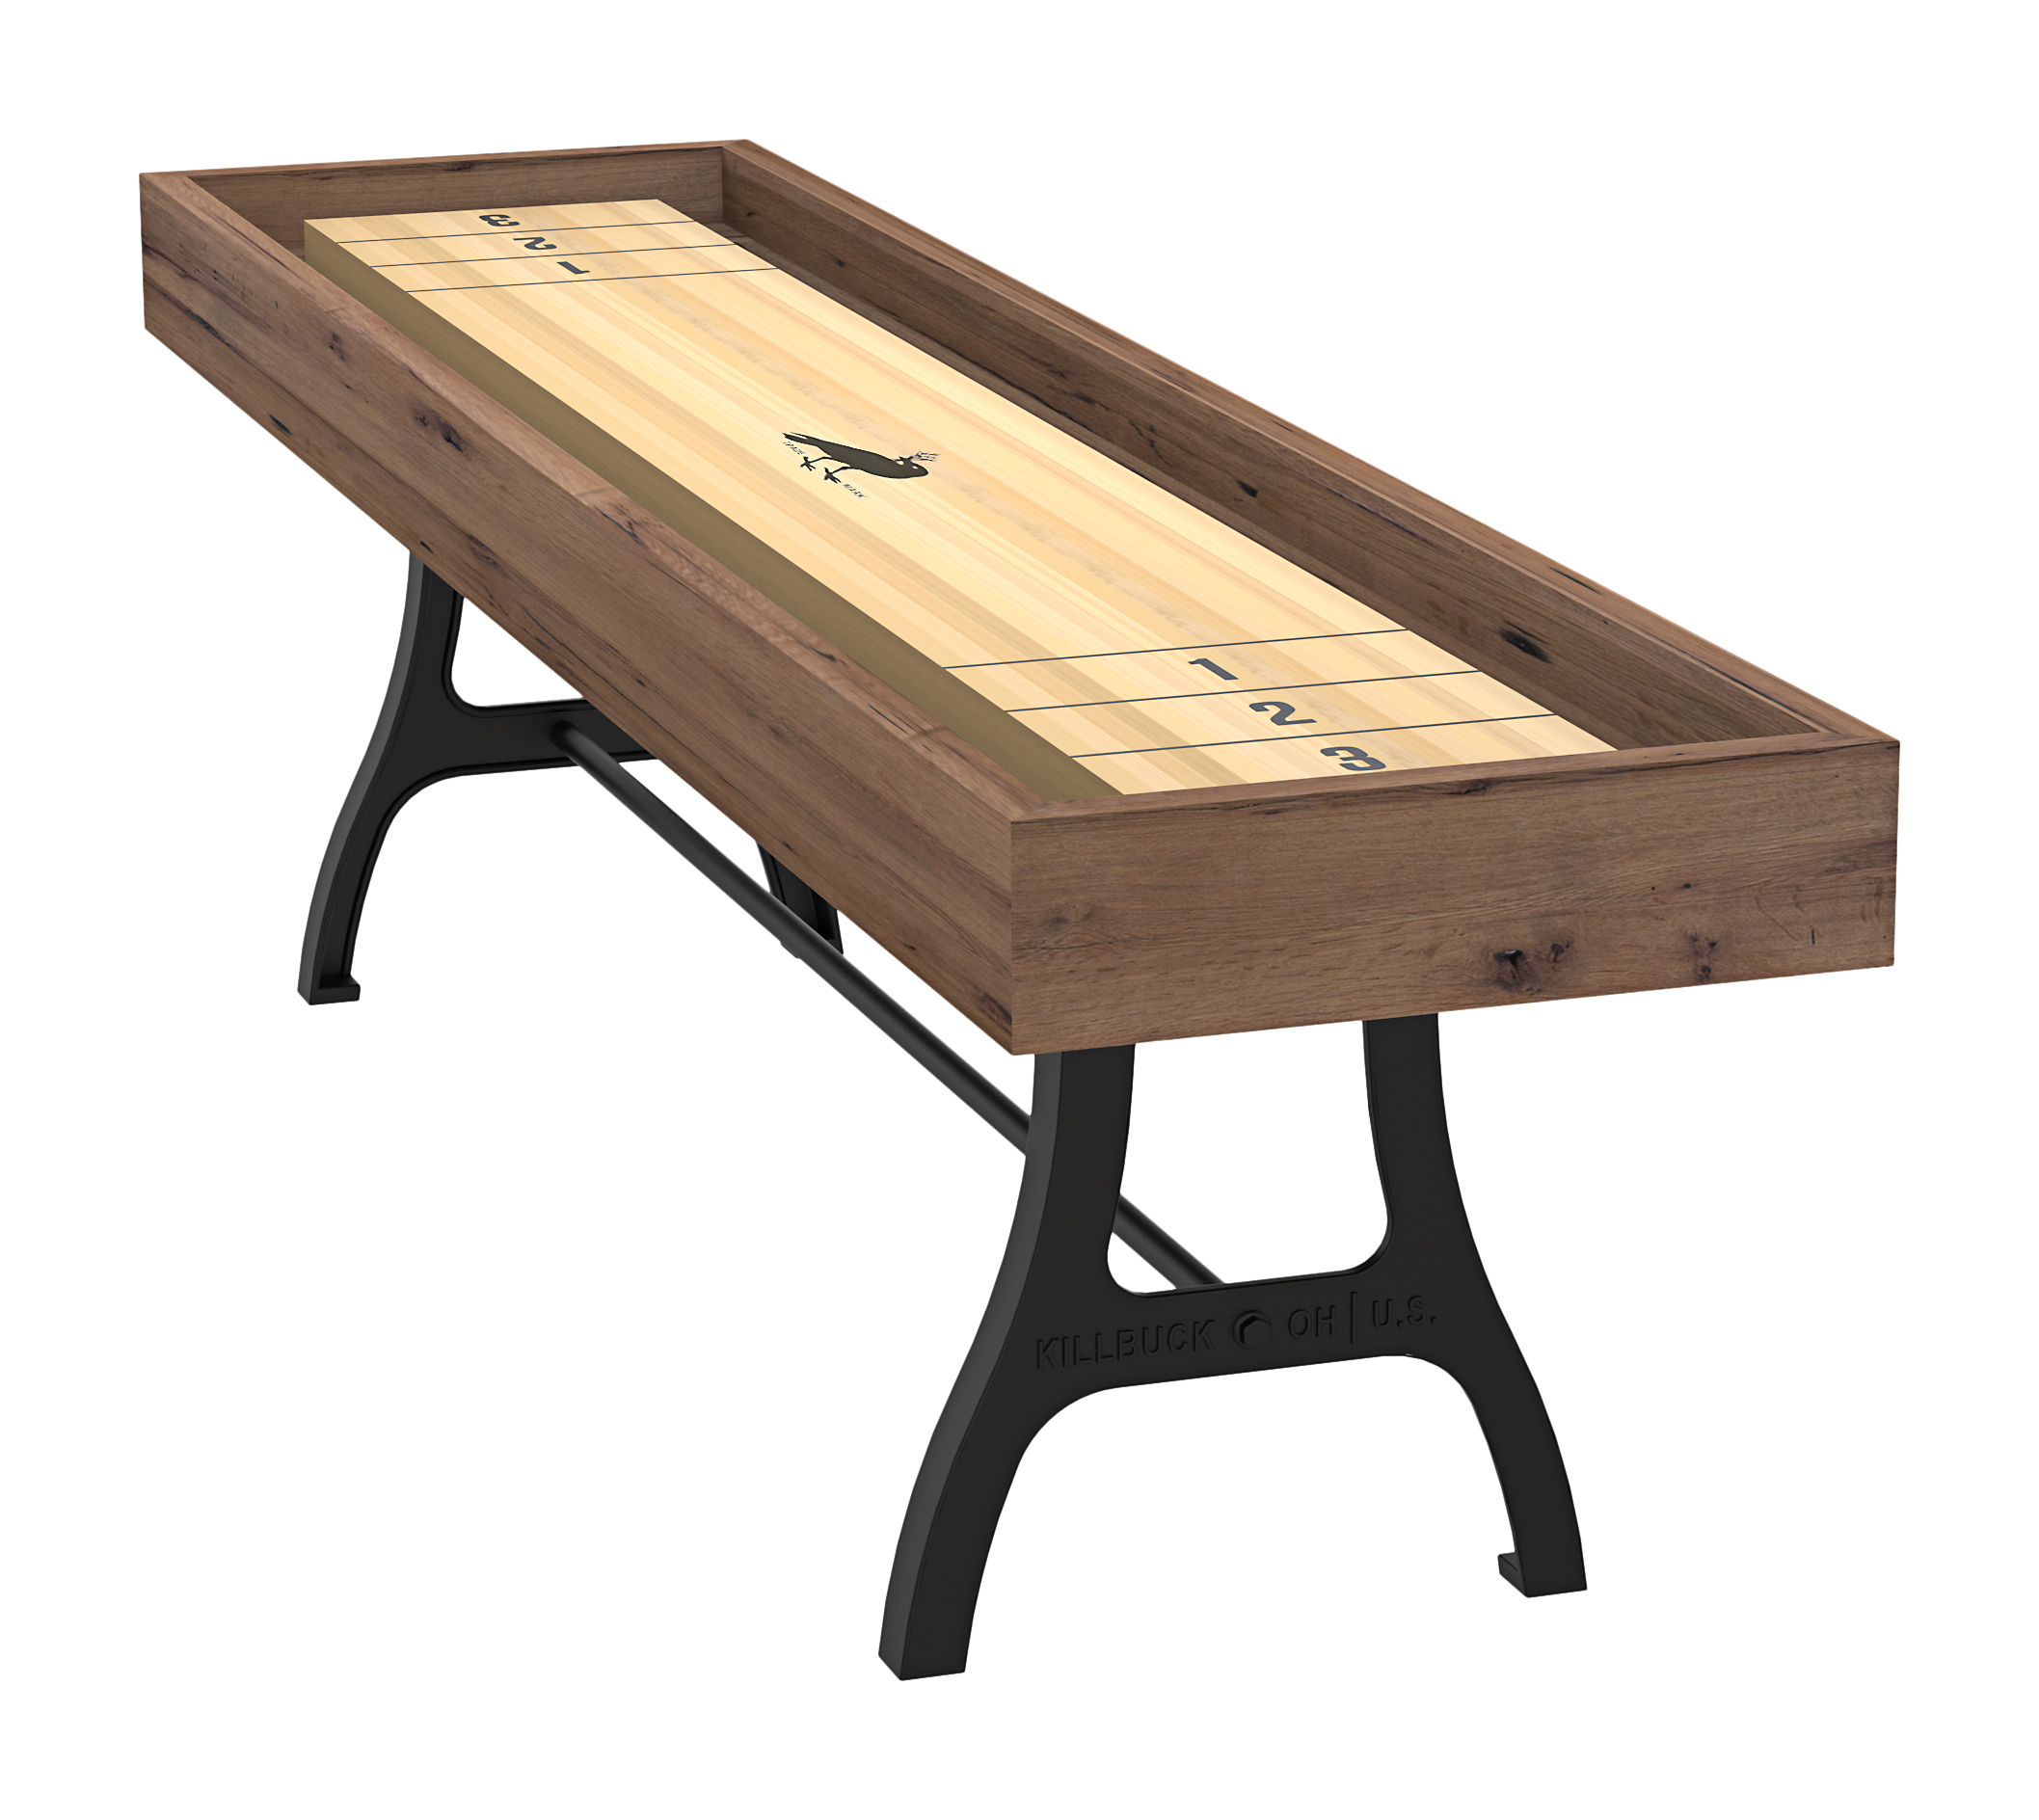 table olhausen shuffleboard off billiards scratch dent and follow us